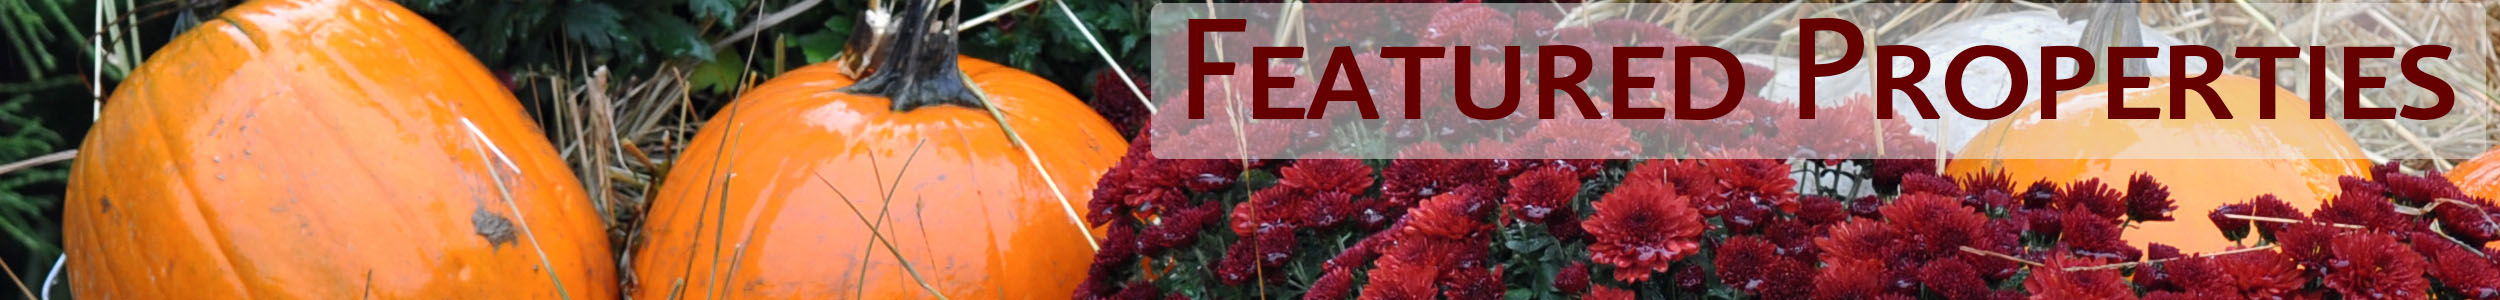 Pumpkins and mums with the words Featured Properties